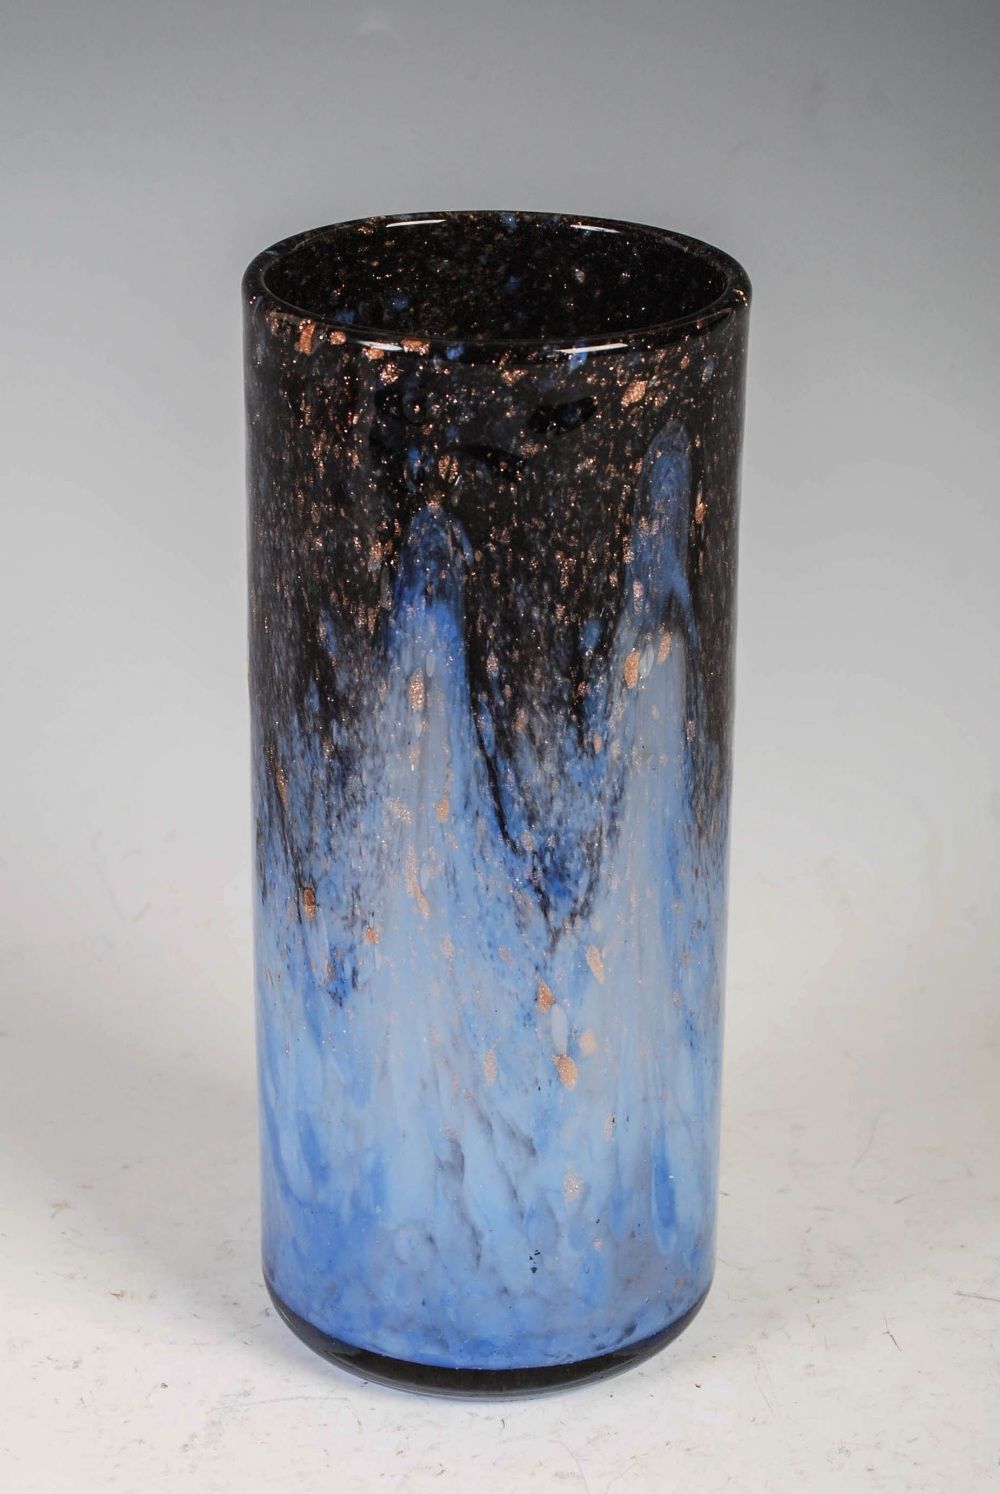 A rare Monart vase, shape L, mottled dark blue and light blue glass with gold coloured inclusions